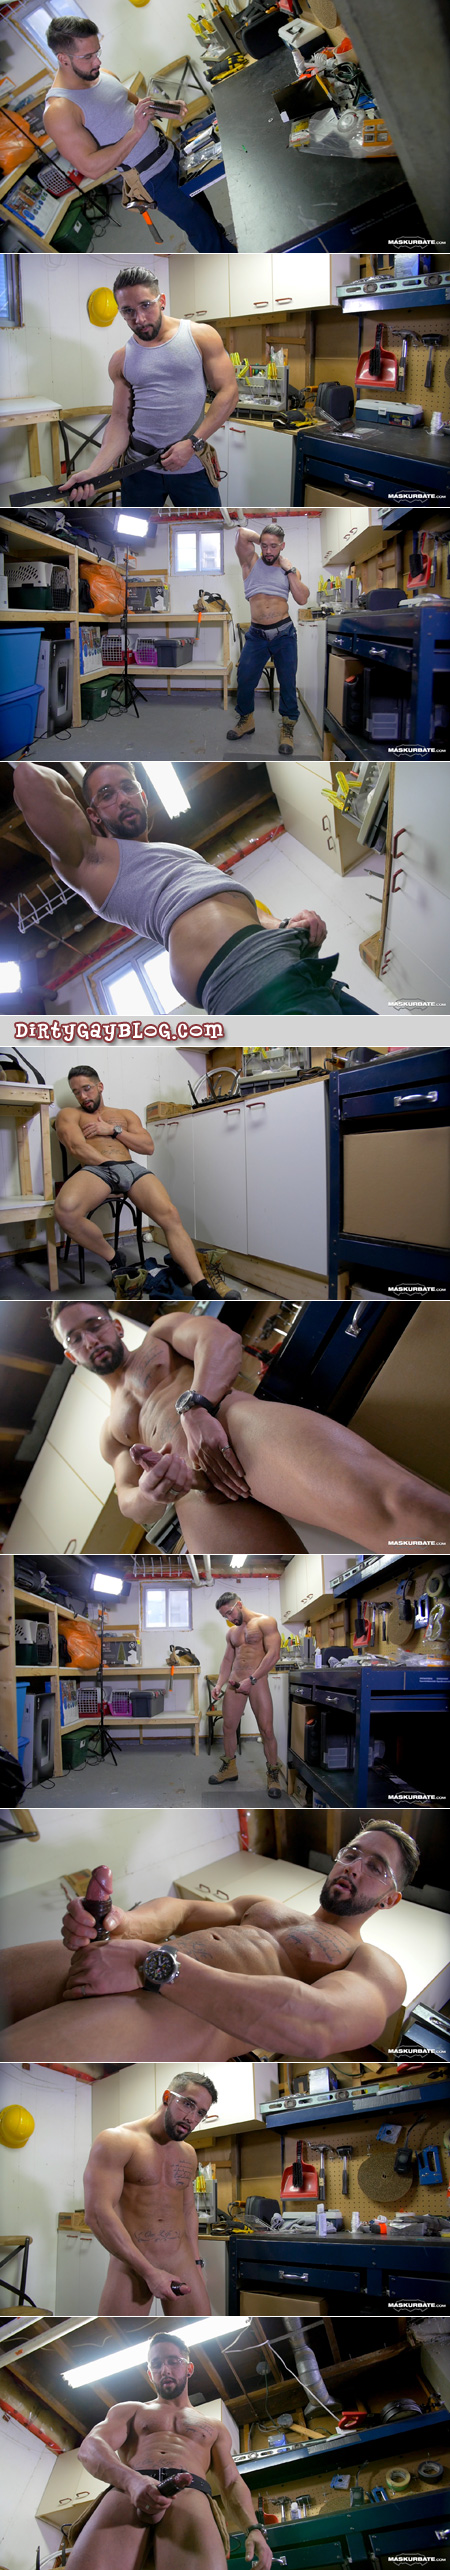 Muscular construction worker using a masturbation sleeve in his basement workshop.